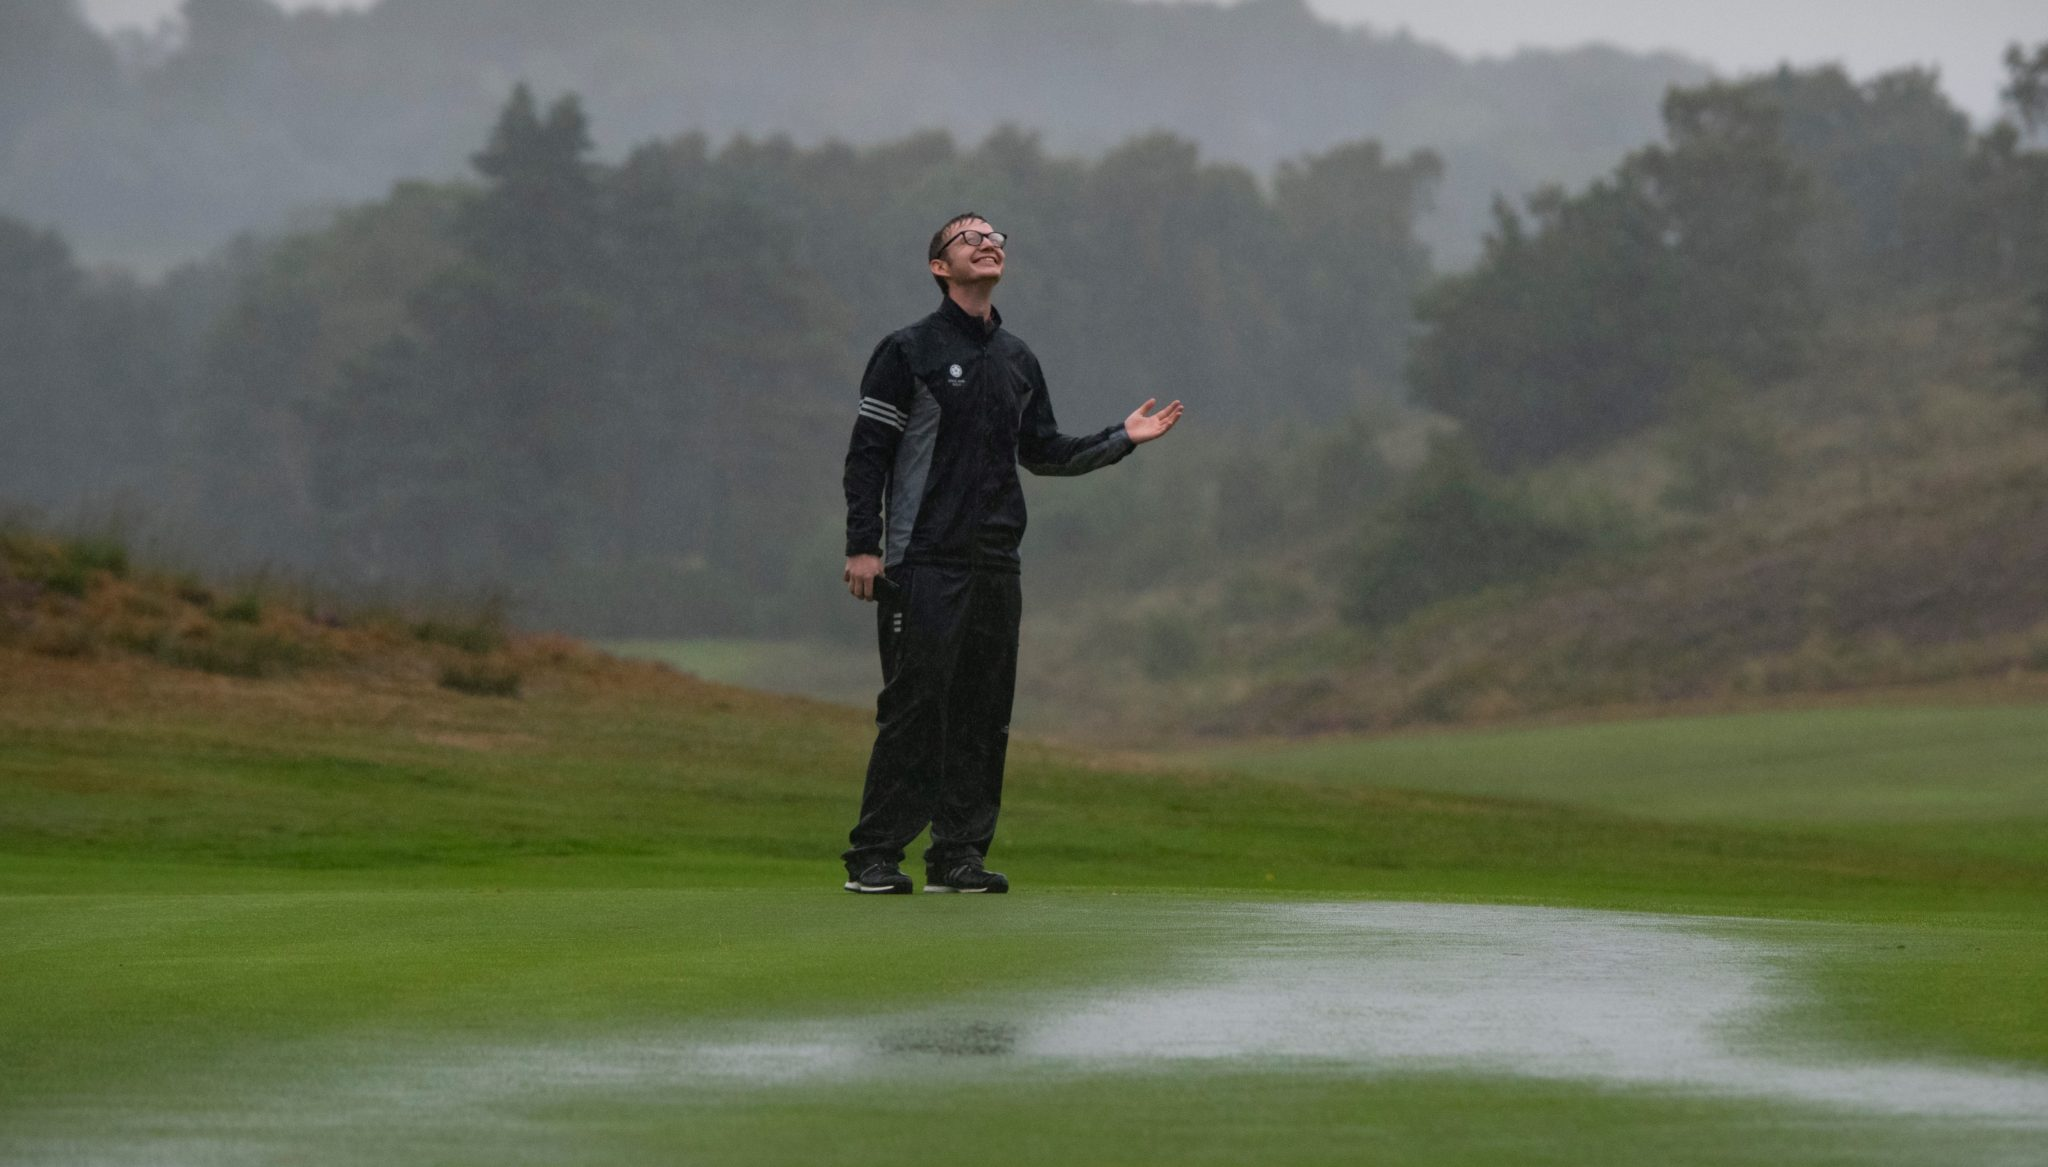 UPDATE: Weather forces change to Senior Men's County Finals format